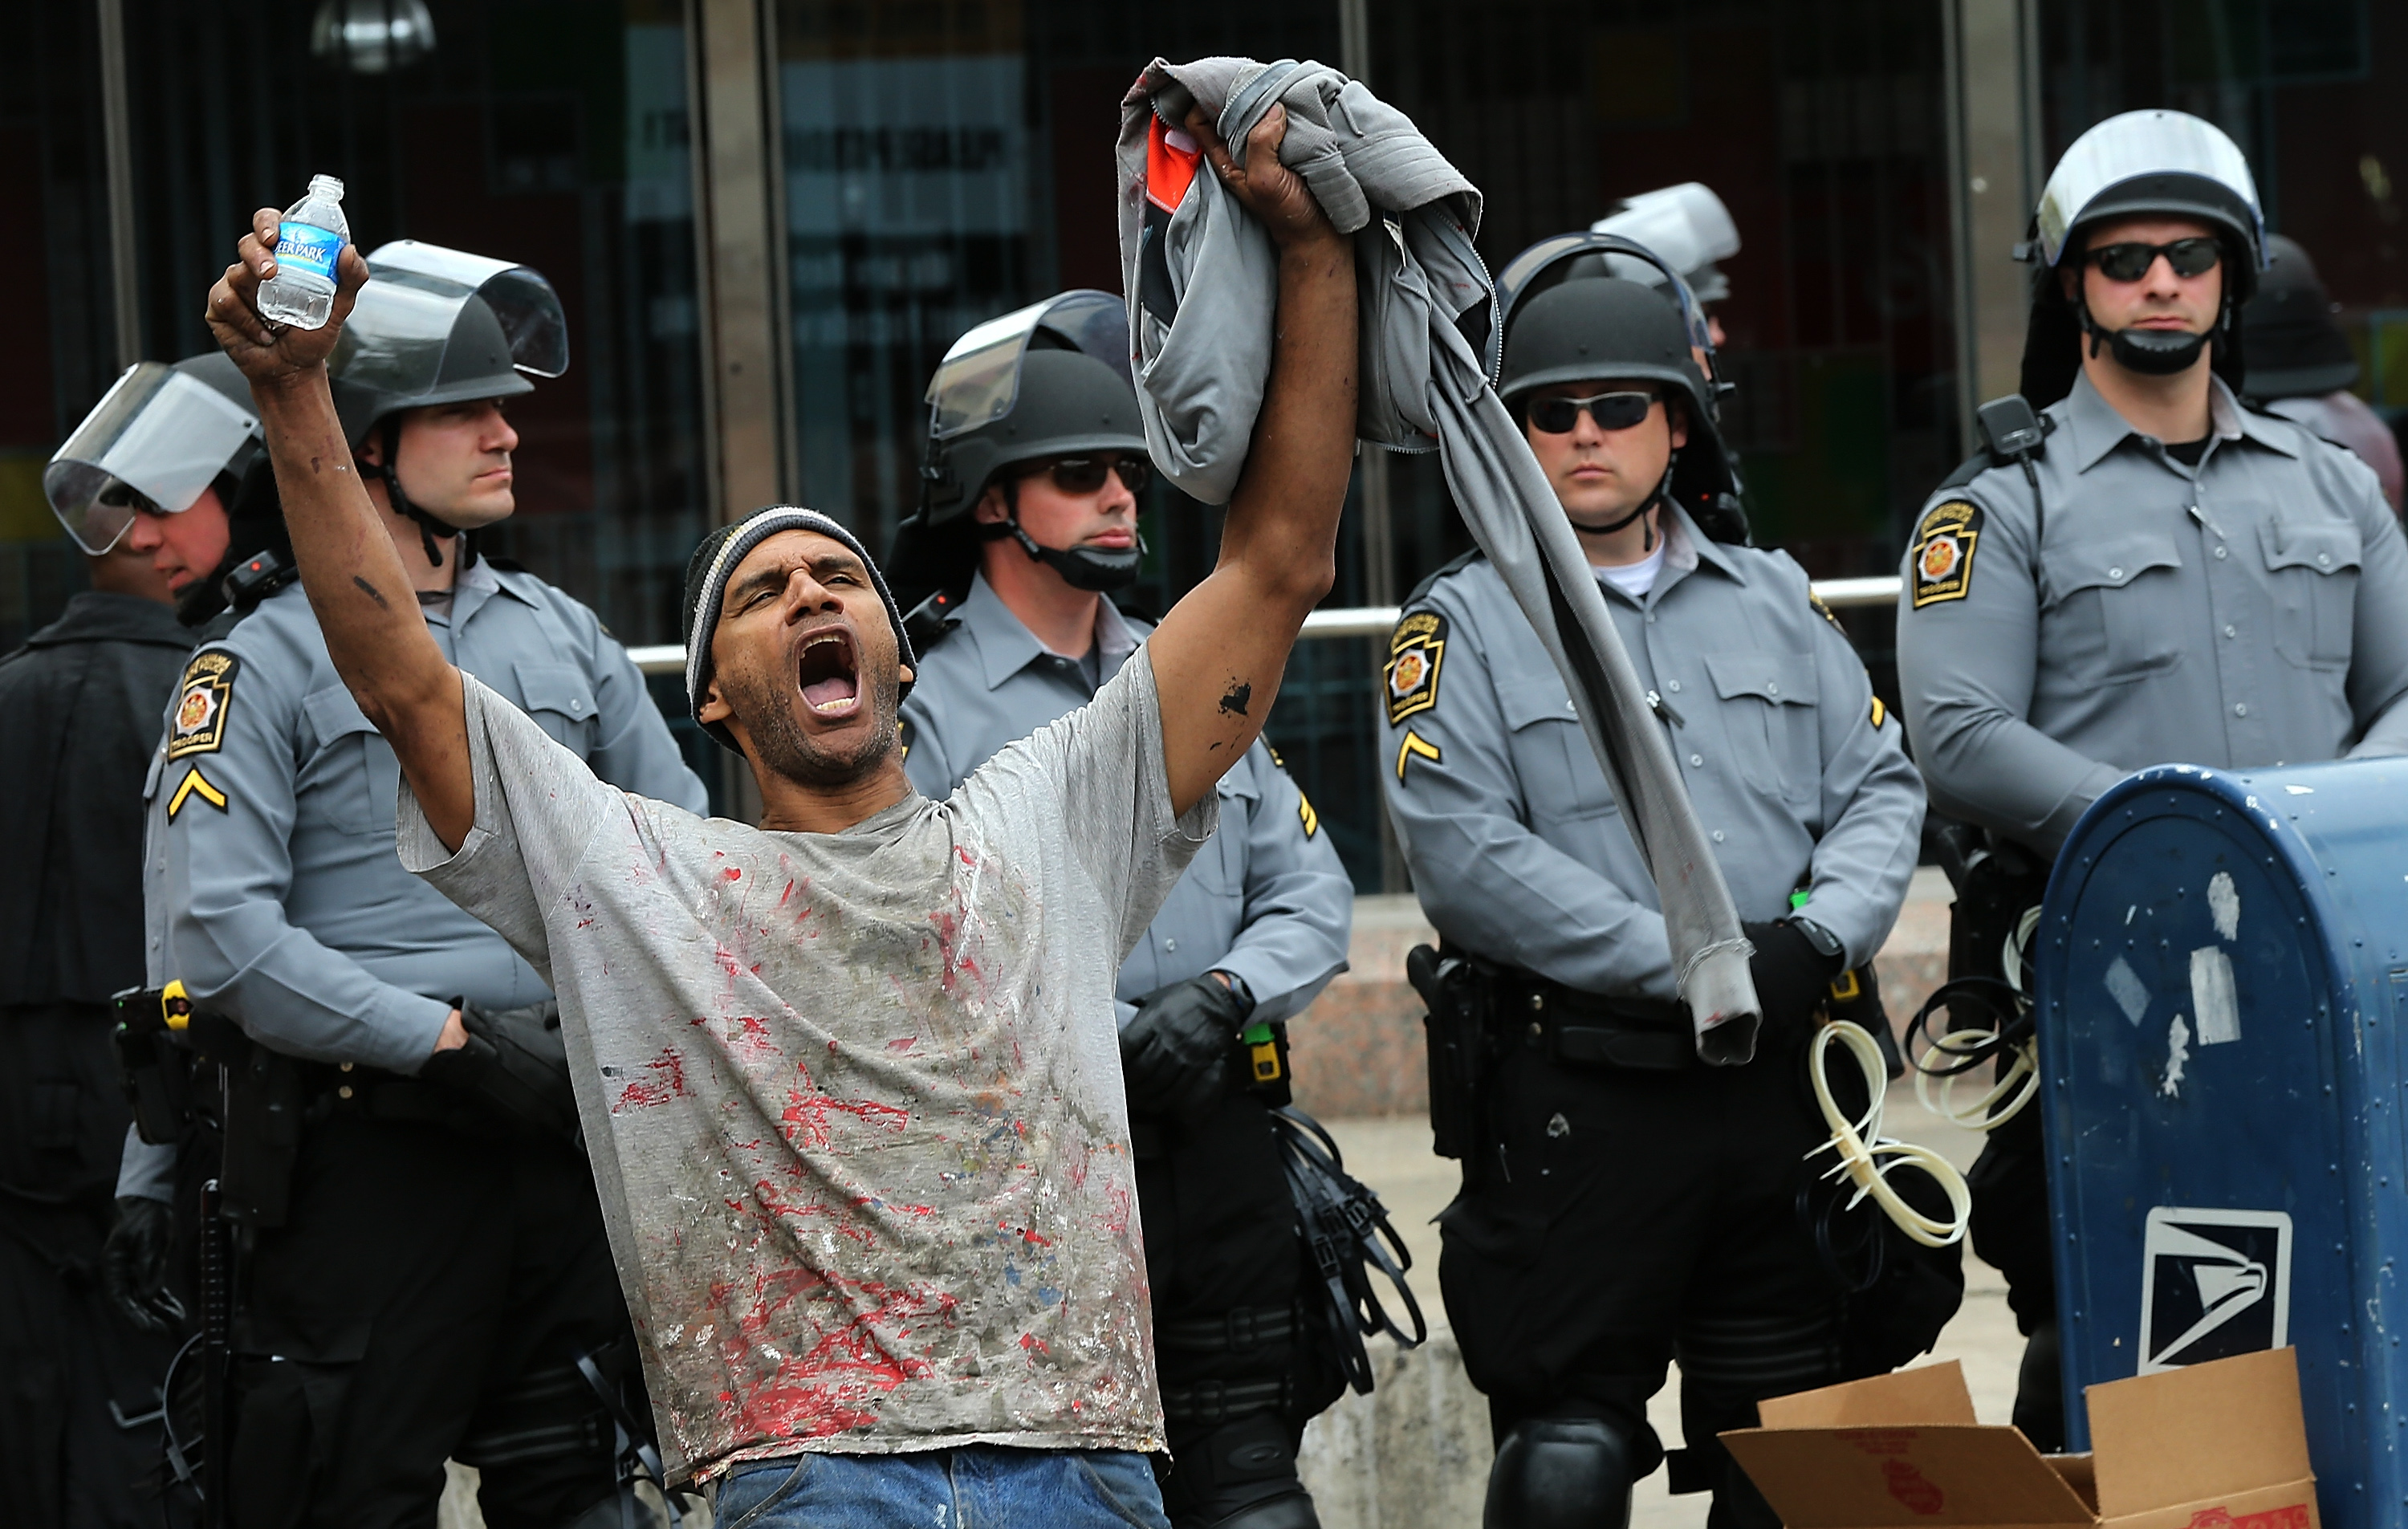 CBS News/New York Times poll: Race relations in America